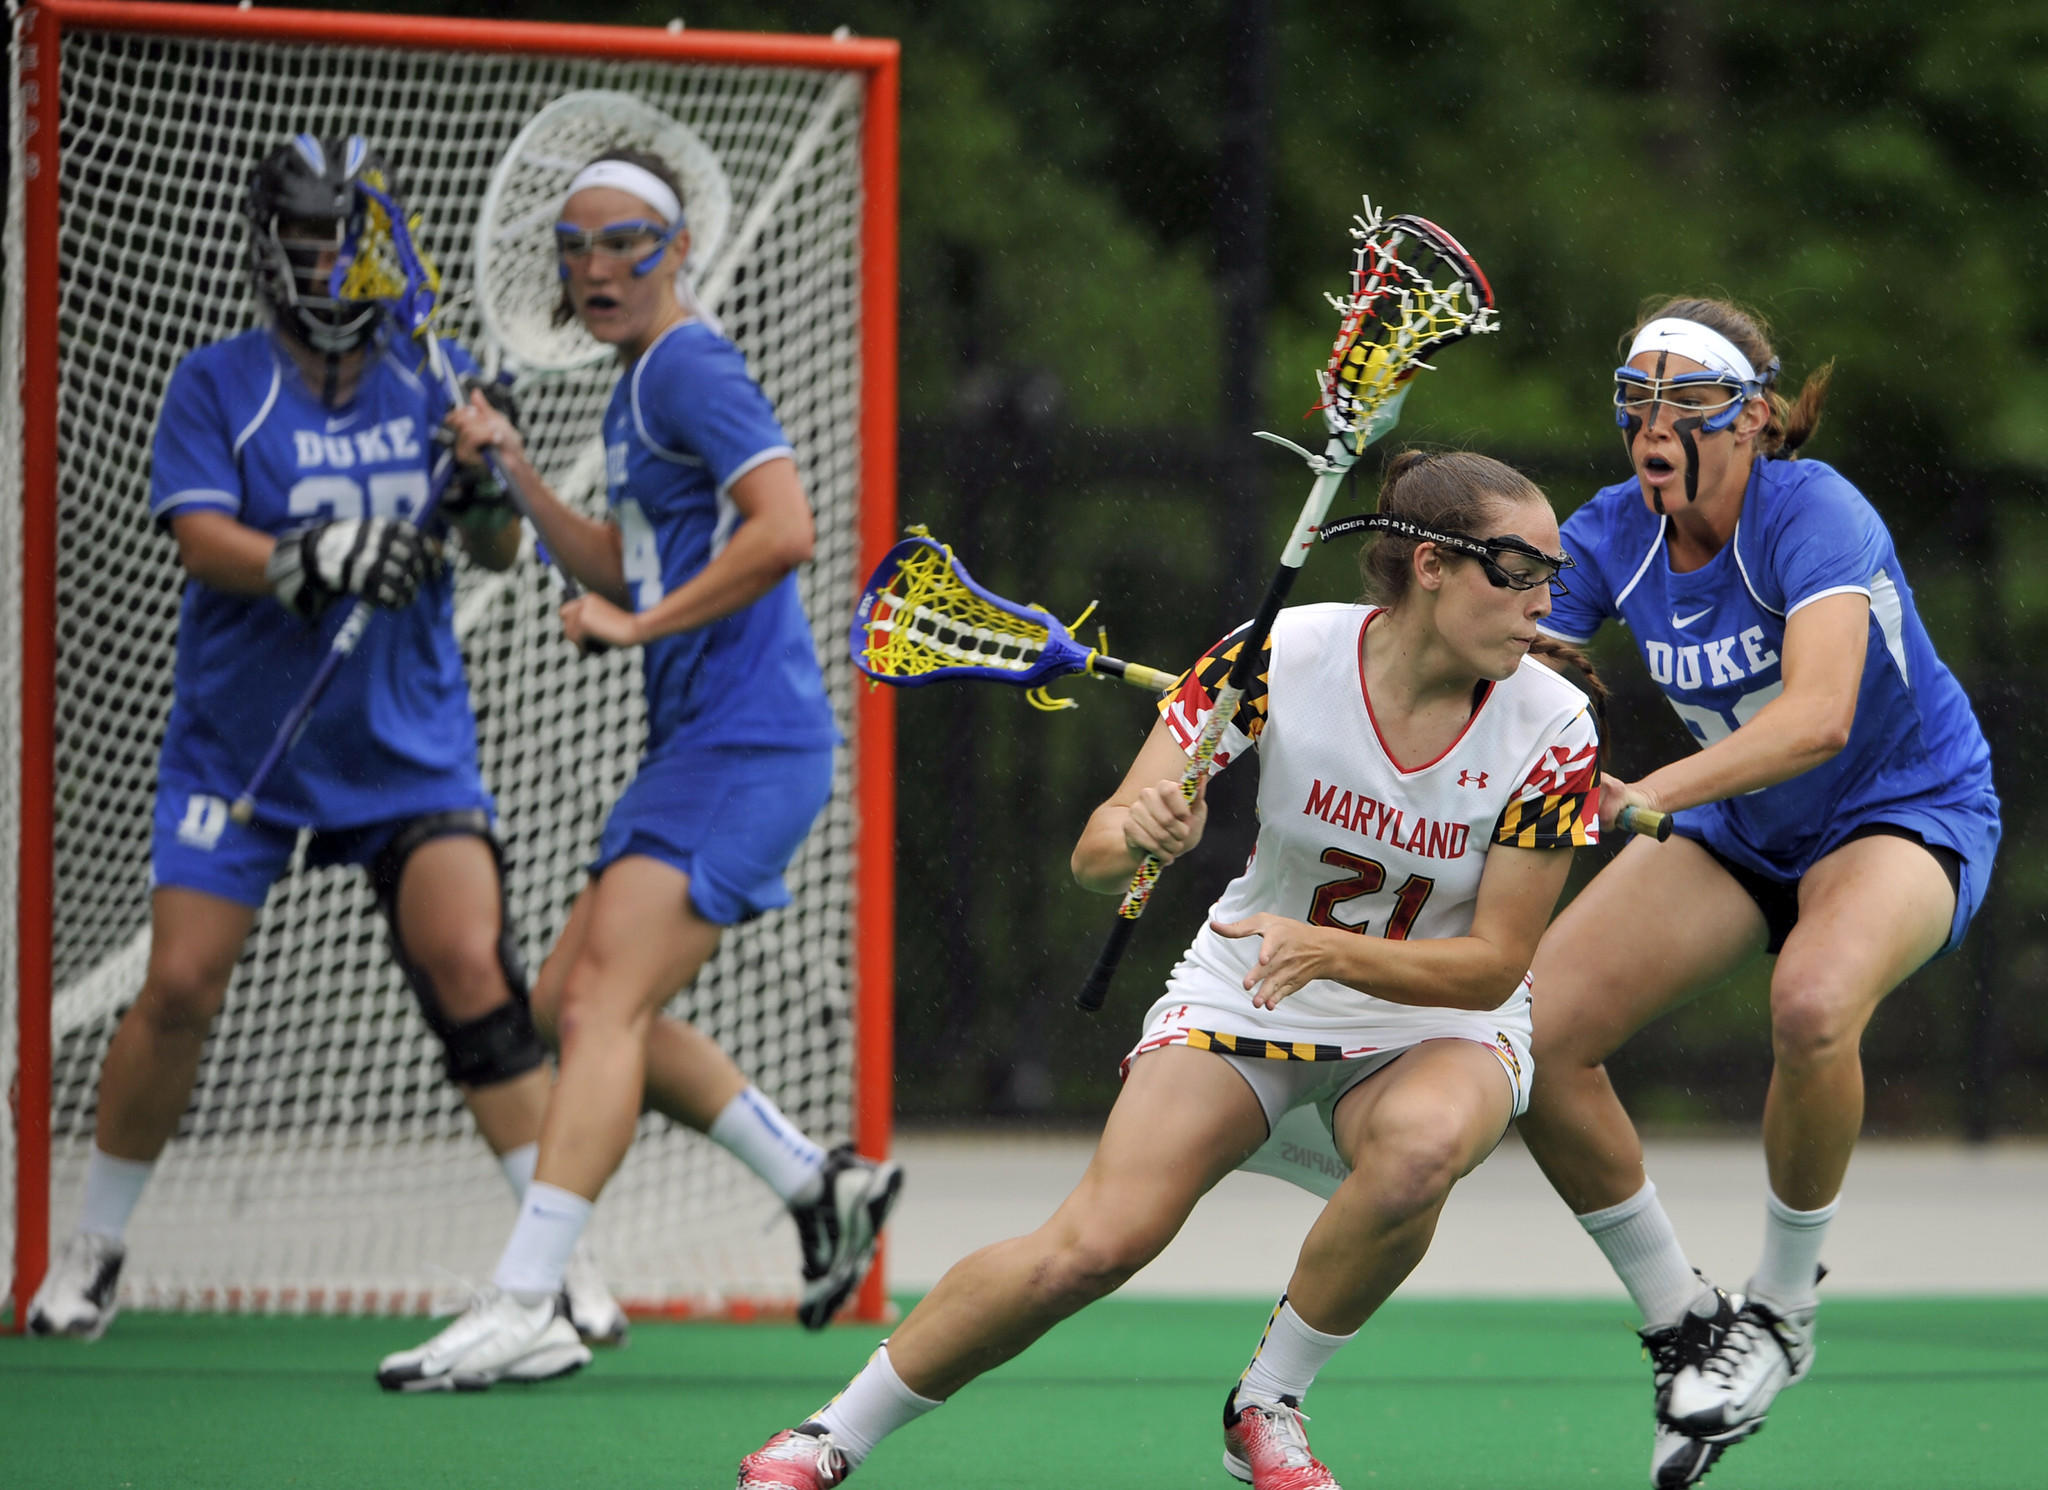 College Park, Md--5/18/13--Left to right, #21 Taylor Cummings, Maryland, moves the ball closely watched by #23 Amalie Trentzsch, Duke. Duke at Maryland women's lacrosse NCAA tournament quarterfinal. Kim Hairston/Baltimore Sun Staff. #2485.